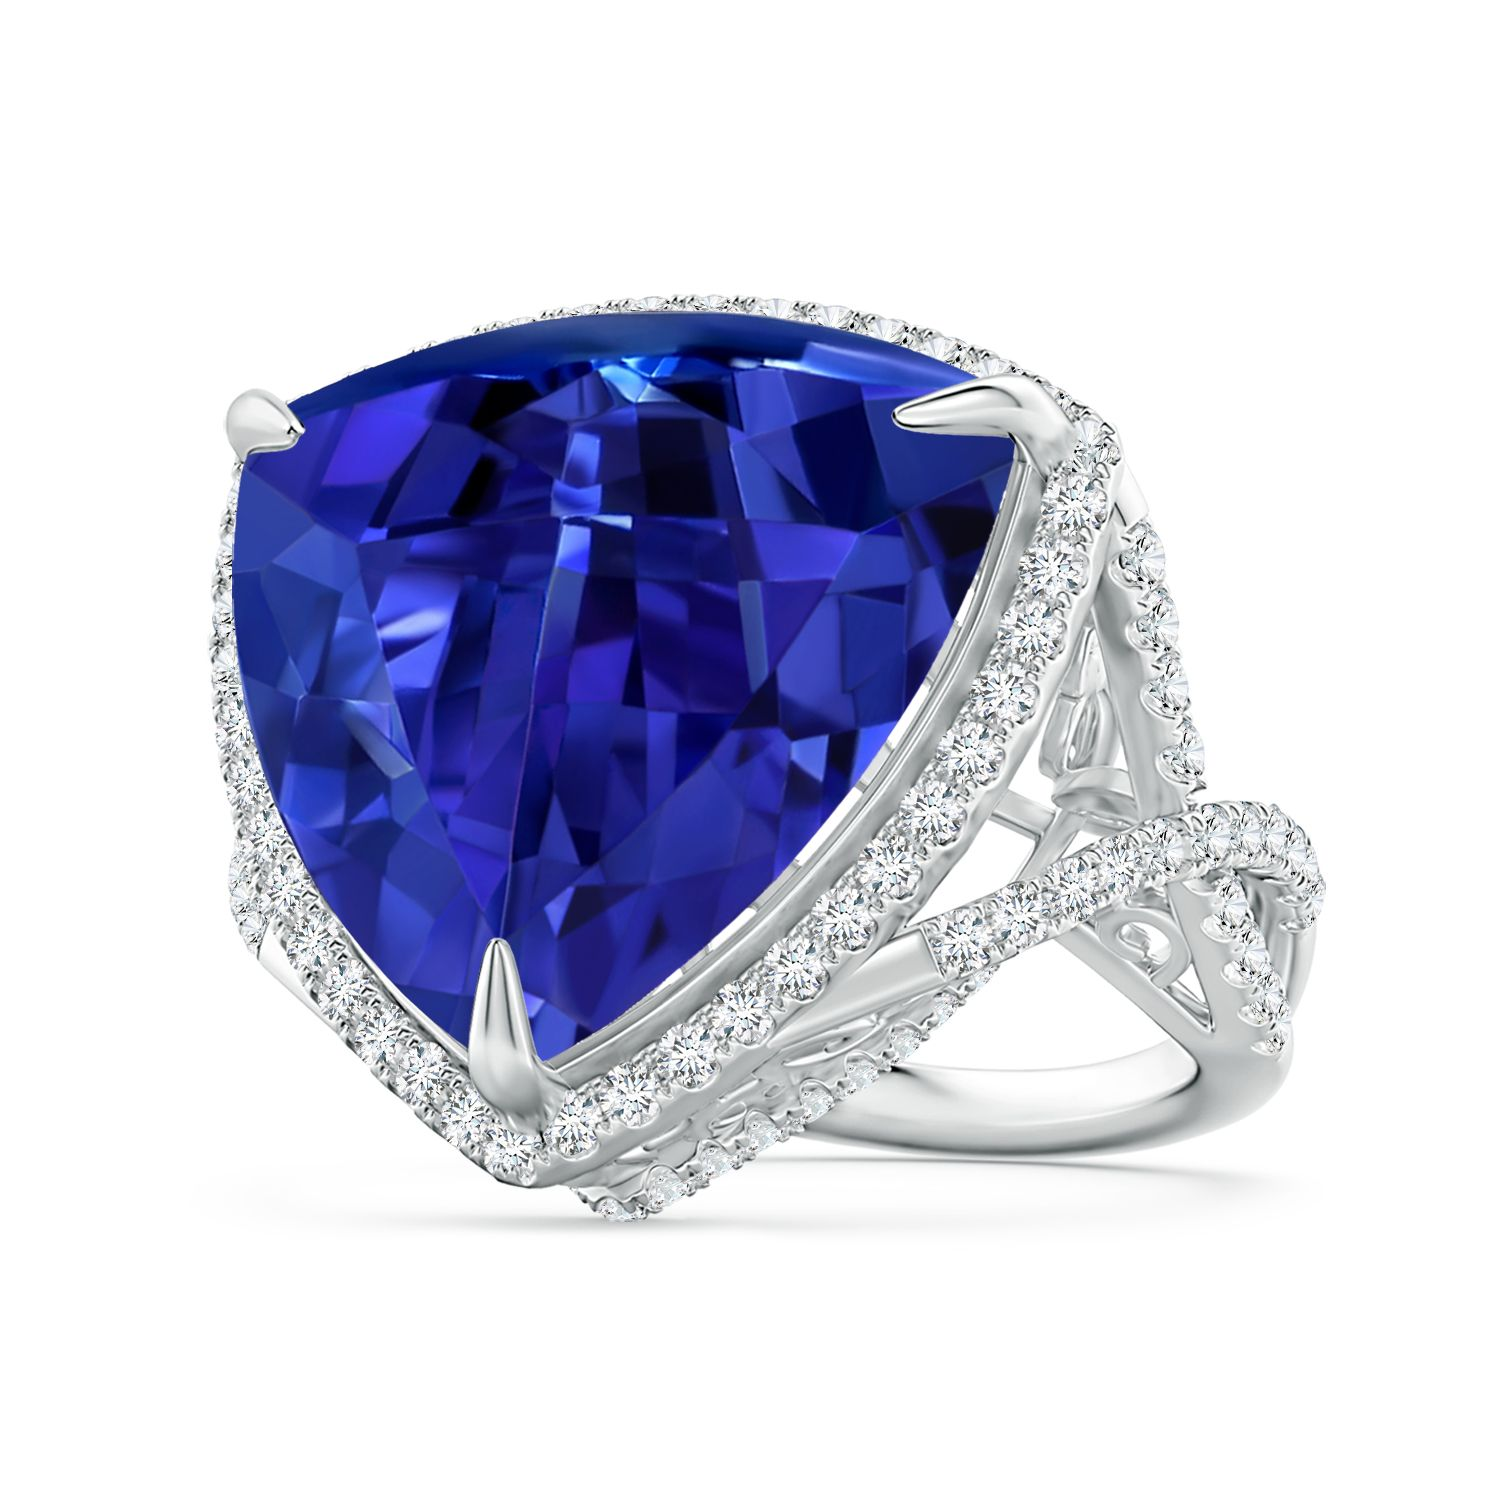 study tanzanite george ring tsavorite pages case banner julia and trillion lloyd